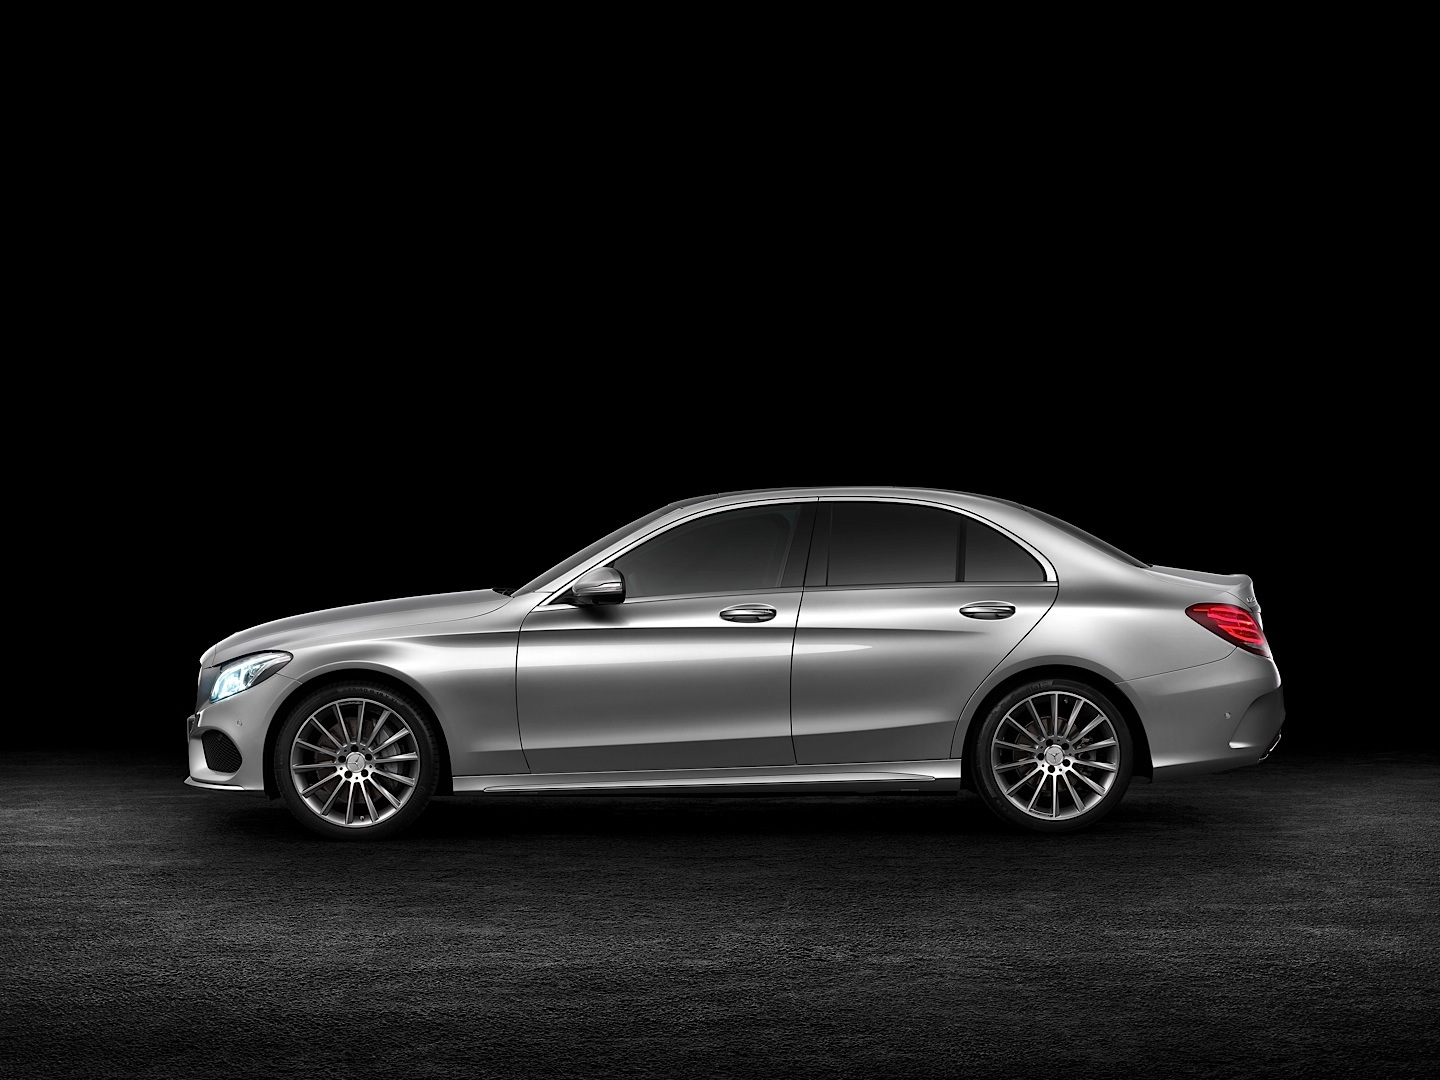 check-out-the-first-official-footage-with-the-new-c-class-w205-video-1080p-20